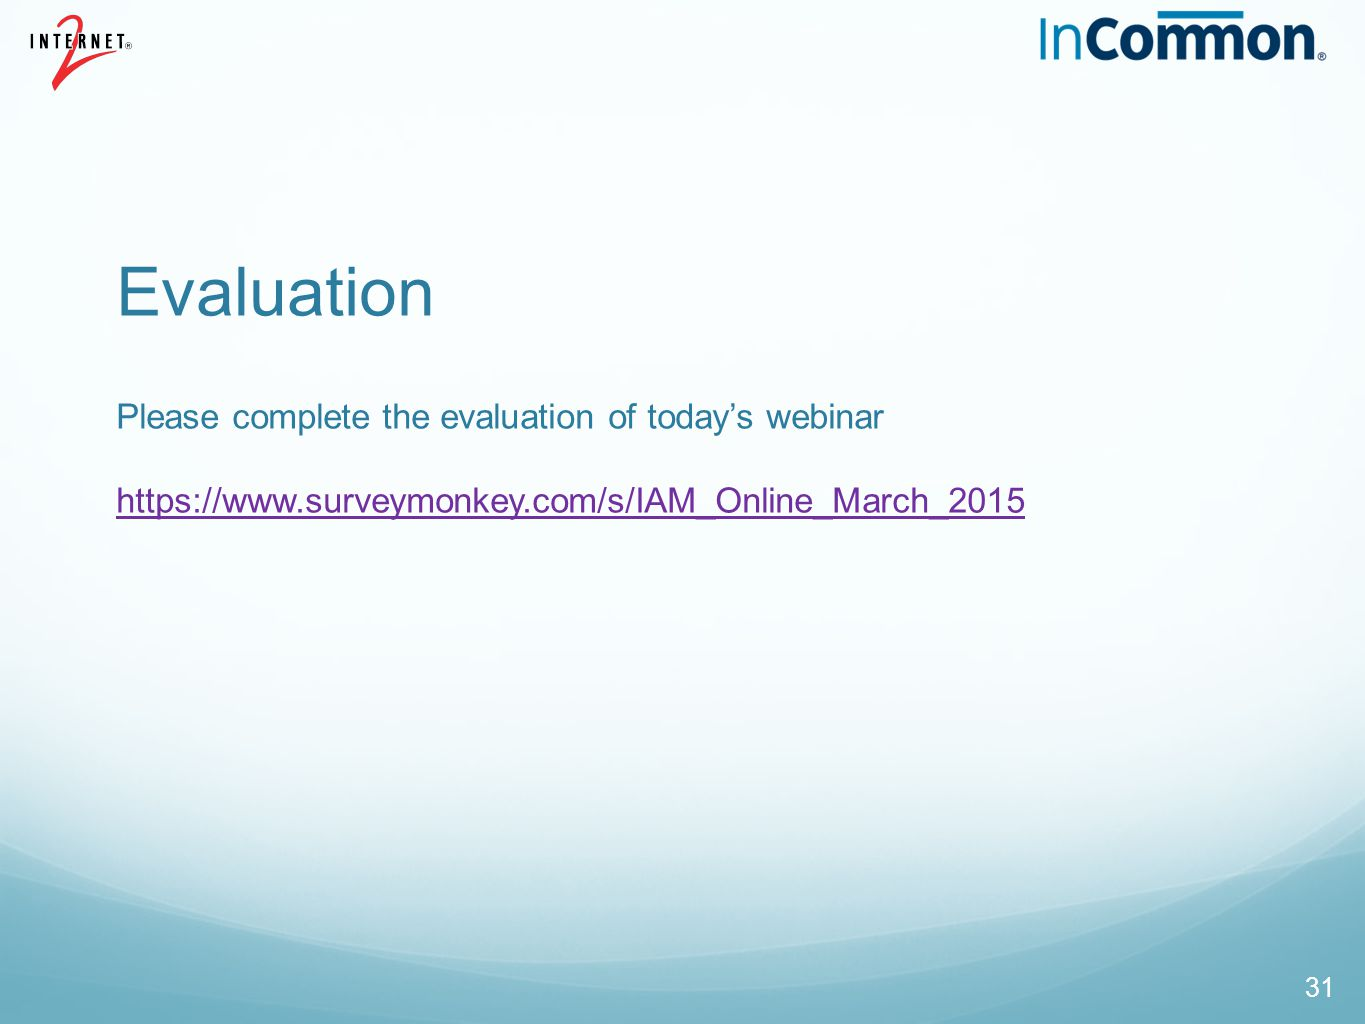 Evaluation Please complete the evaluation of today's webinar https://www.surveymonkey.com/s/IAM_Online_March_2015.